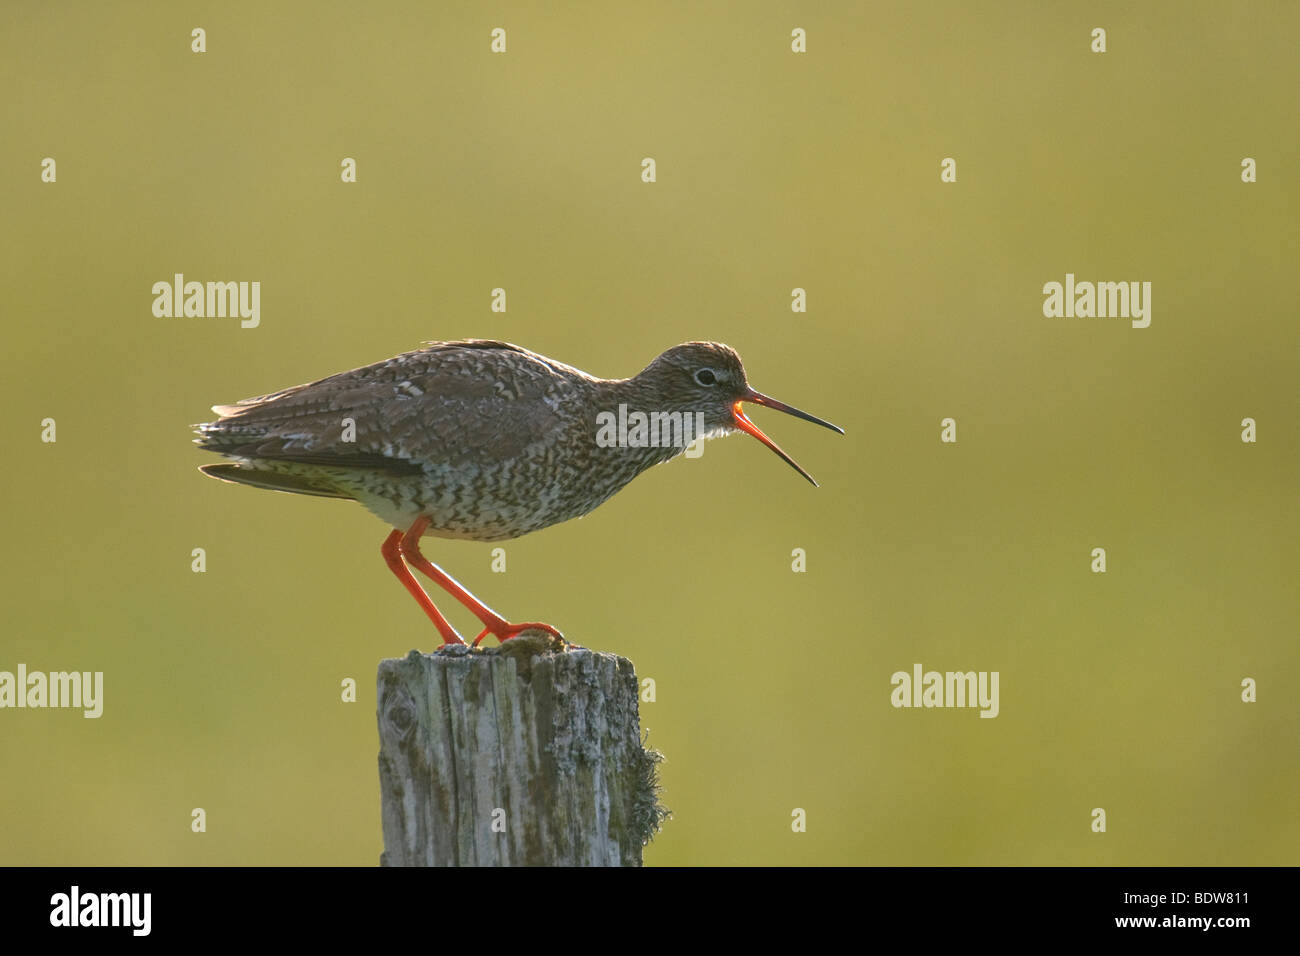 Common redshank Tringa totanus alarm calling on isle of South Uist, Western Isles, Scotland. Stock Photo